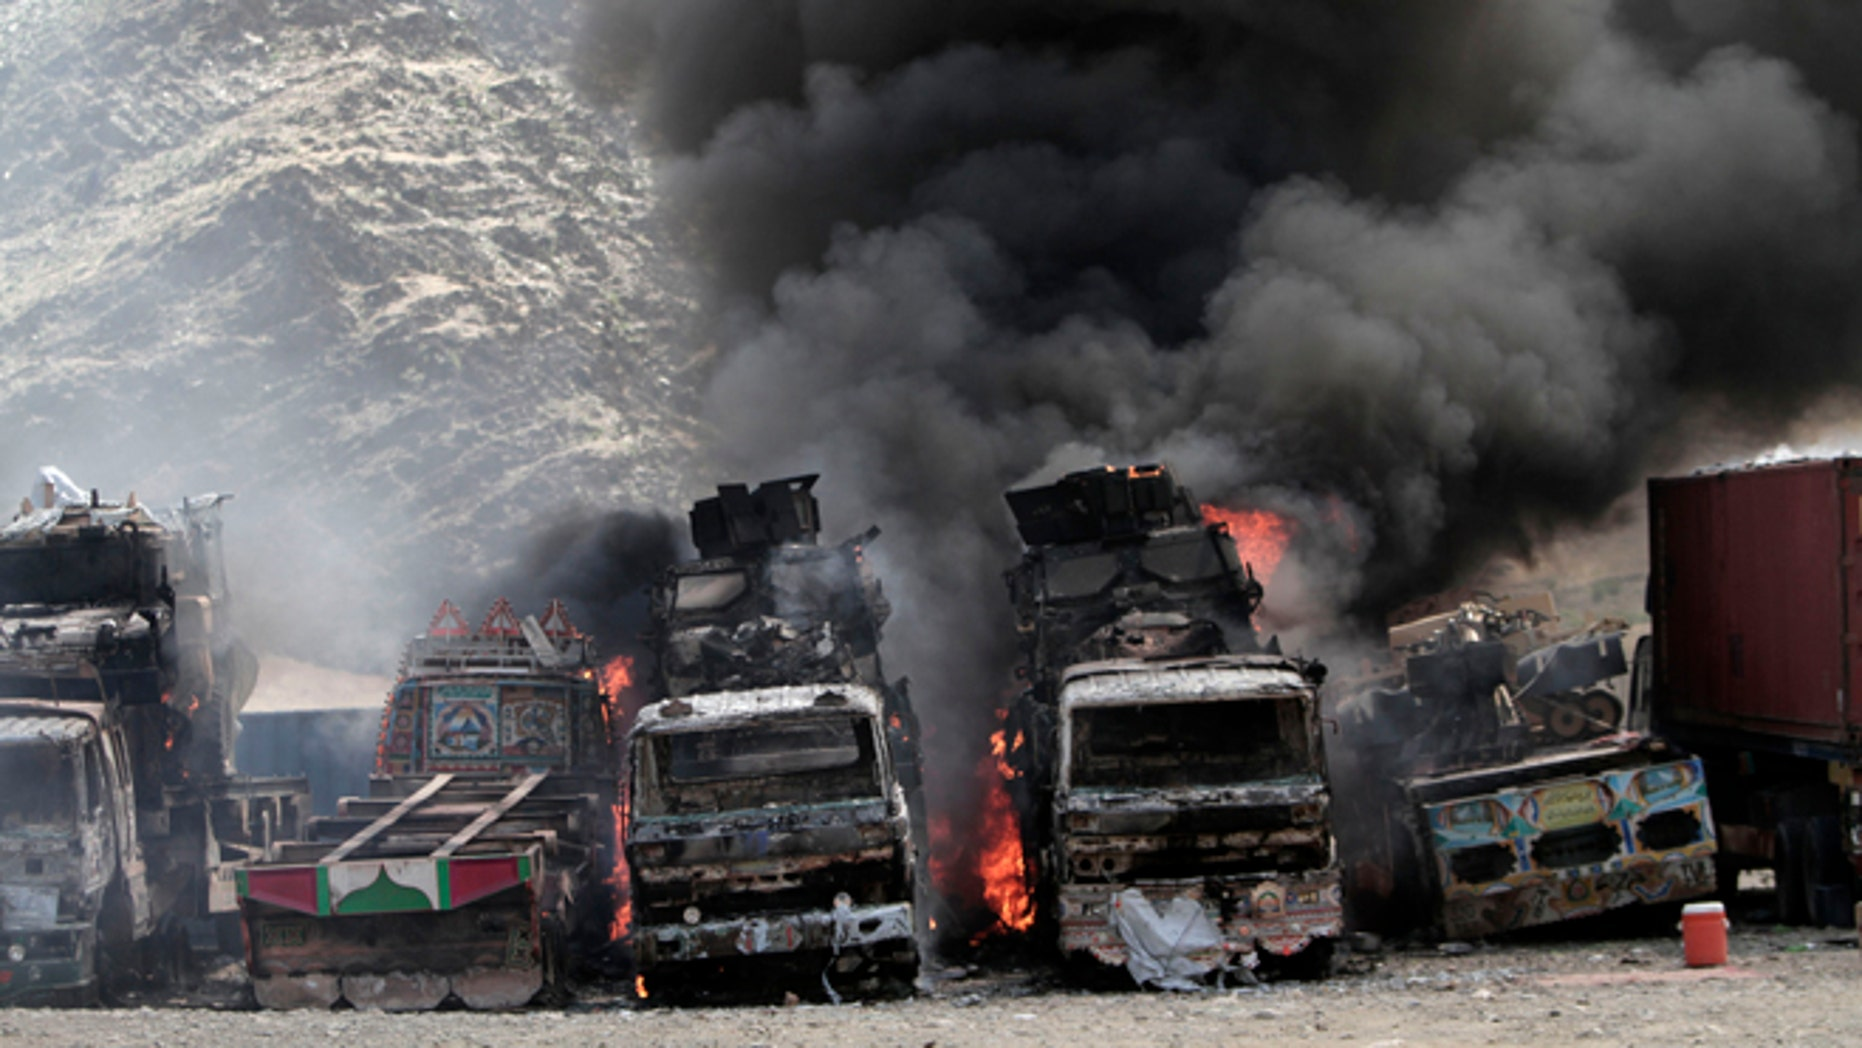 Sept. 2, 2013: Smoke rises from  NATO supply trucks following an attack by militants in the Torkham area near the Pakistan-Afghanistan border in Jalalabad province east of Kabul, Afghanistan. The Taliban claimed responsibility for the strike on a U.S. base in Afghanistan near the border with Pakistan on Monday, setting off bombs, torching vehicles and shutting down a key road used by NATO supply trucks, officials said. Several people -- apparently all attacking insurgents -- were killed.  (AP/Rahmat Gul)